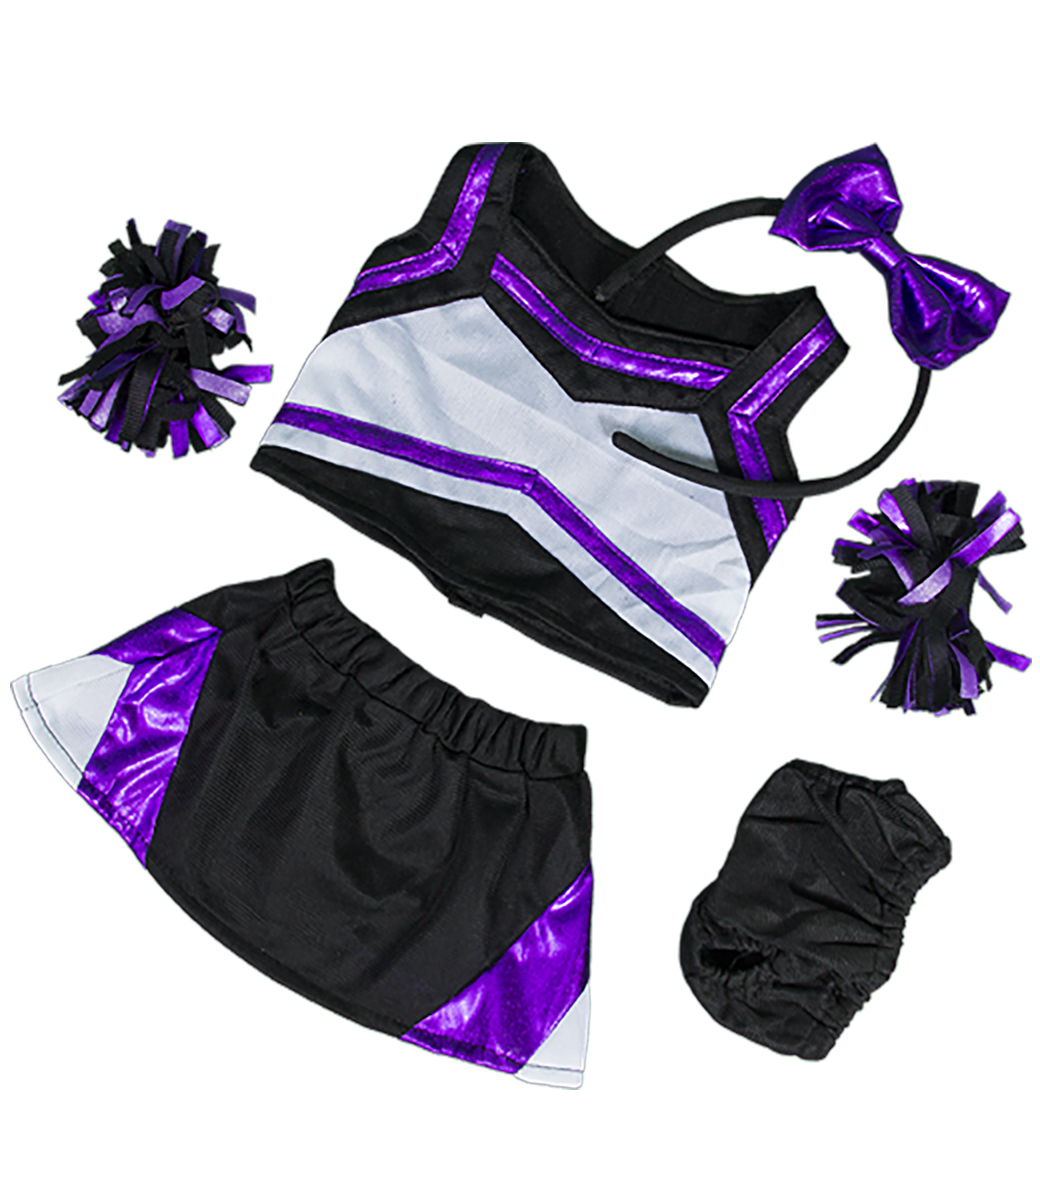 "Metallic Purple & Black Cheerleader Teddy Bear Clothes Fits Most 14""-18"" Build-A-Bear and Make Your... by Teddy Mountain"